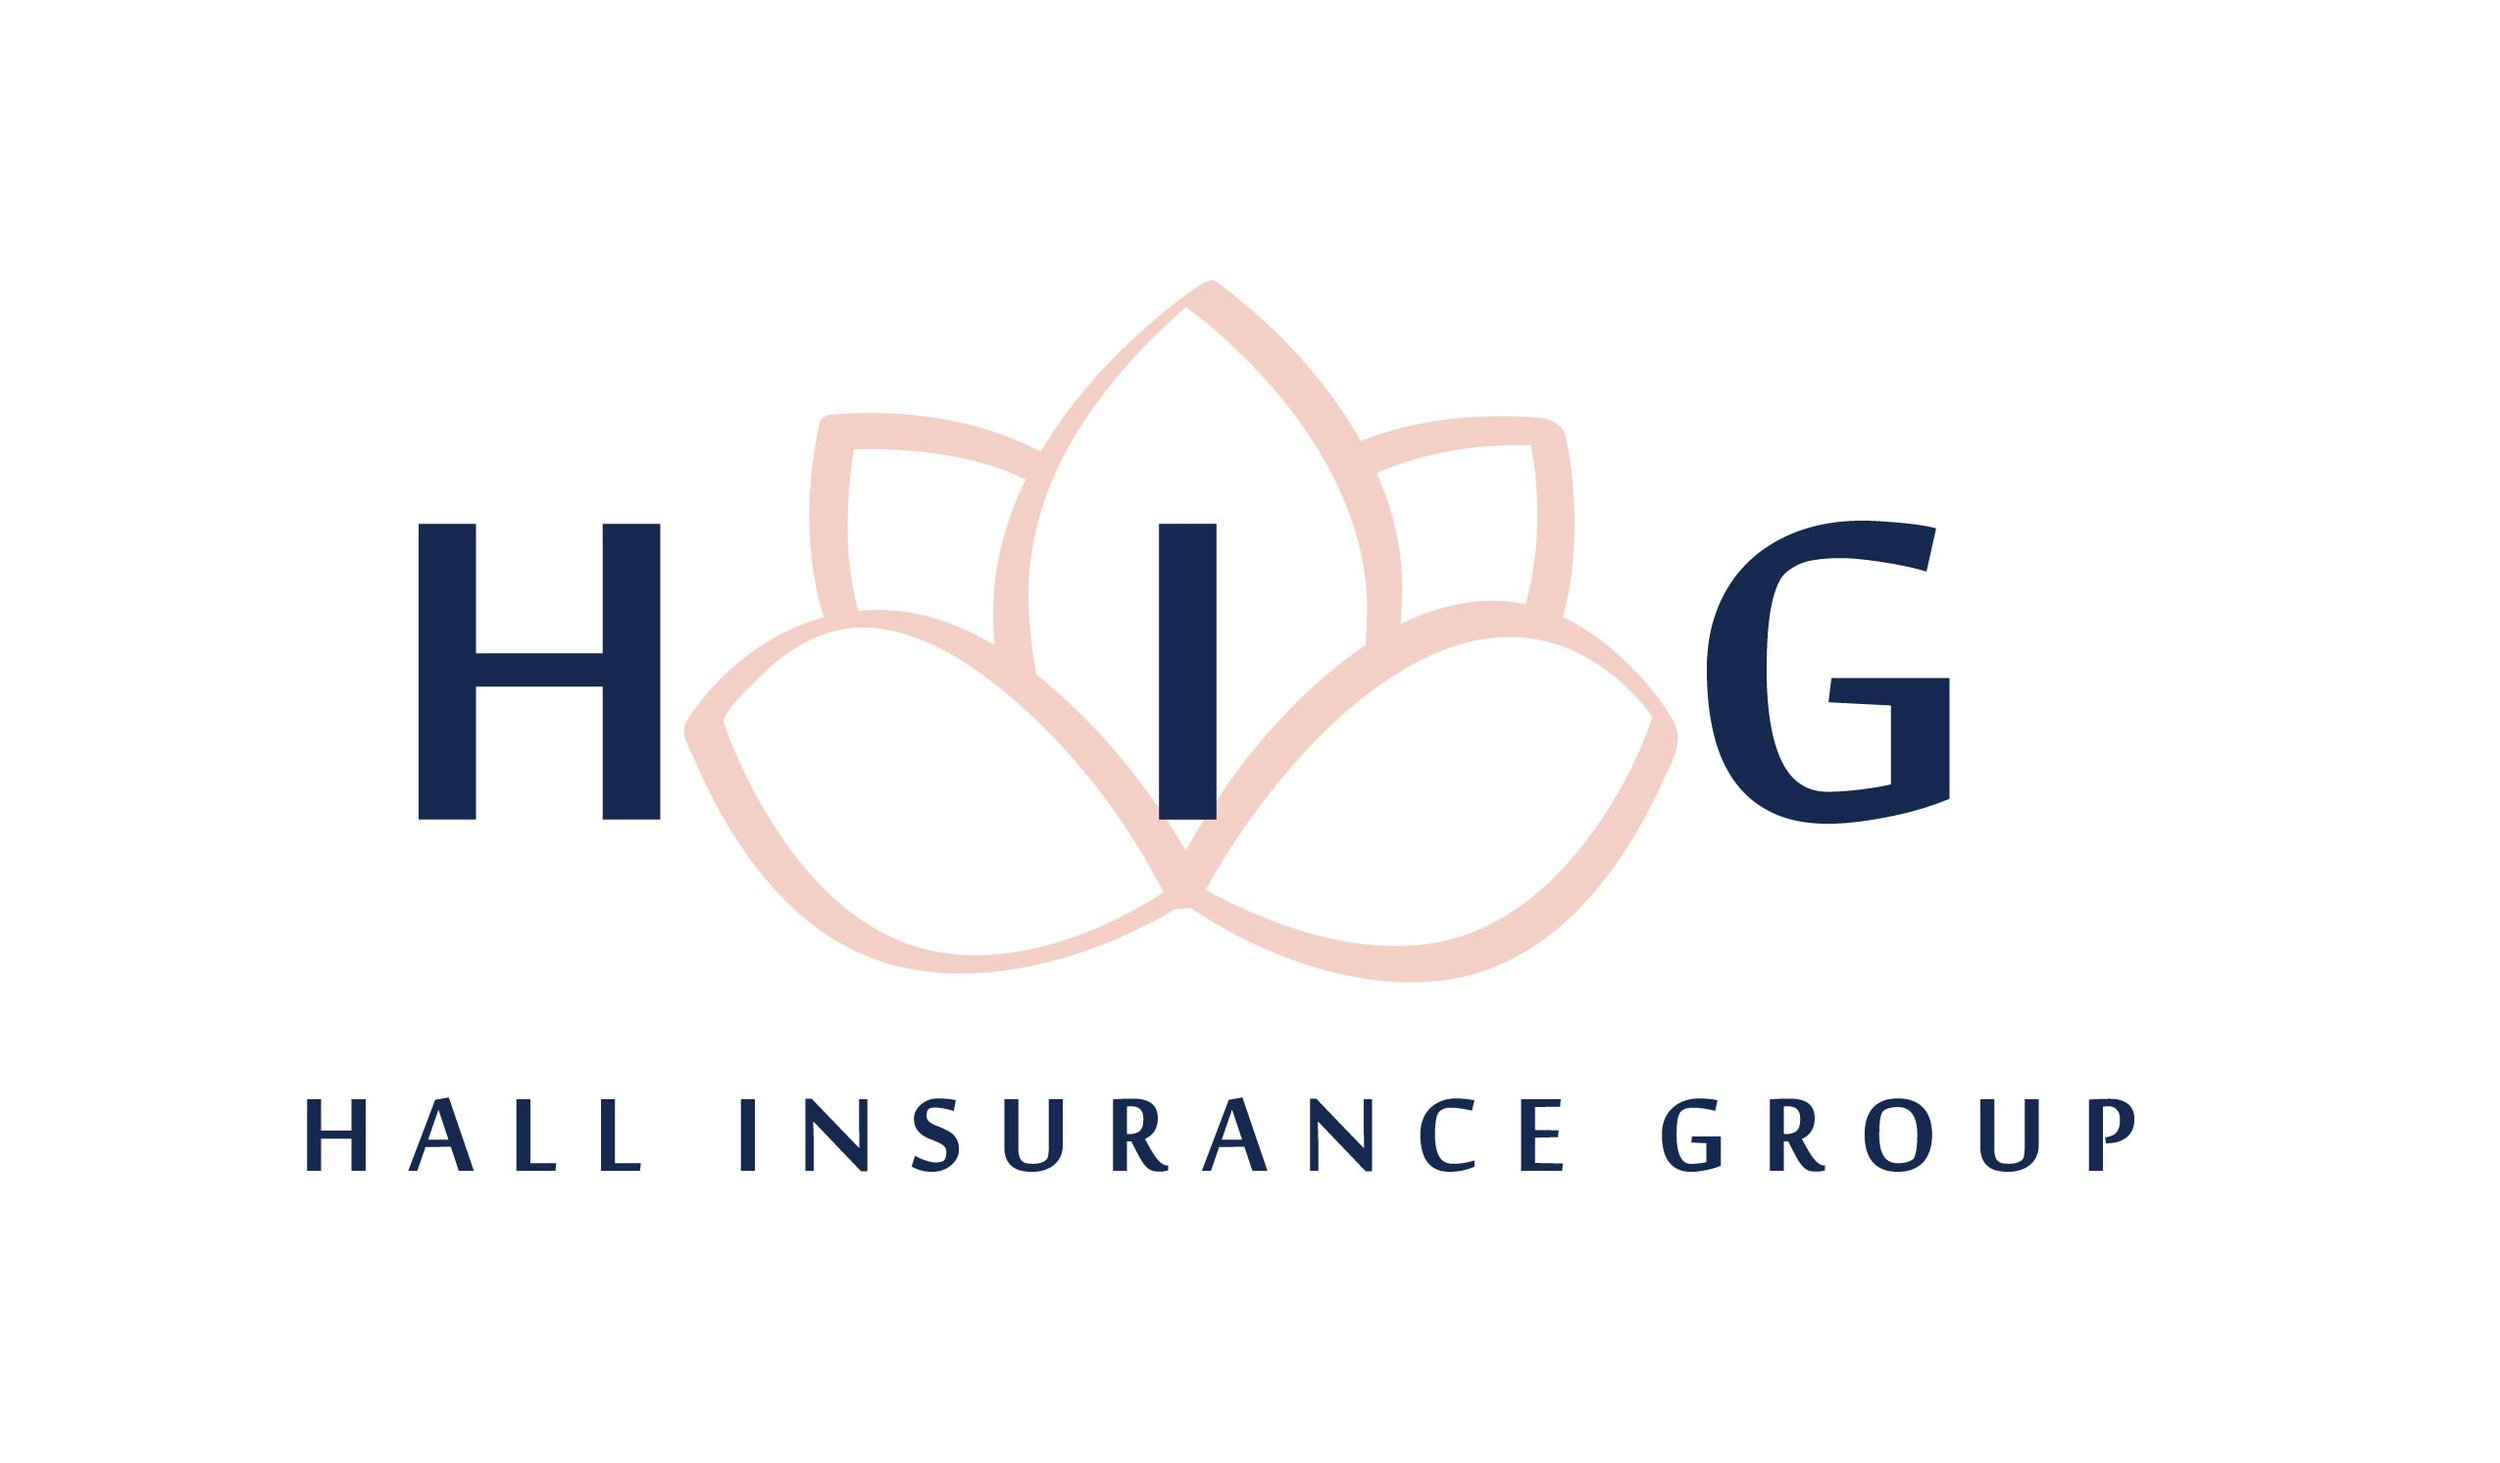 the hall insurance group new logo.JPG